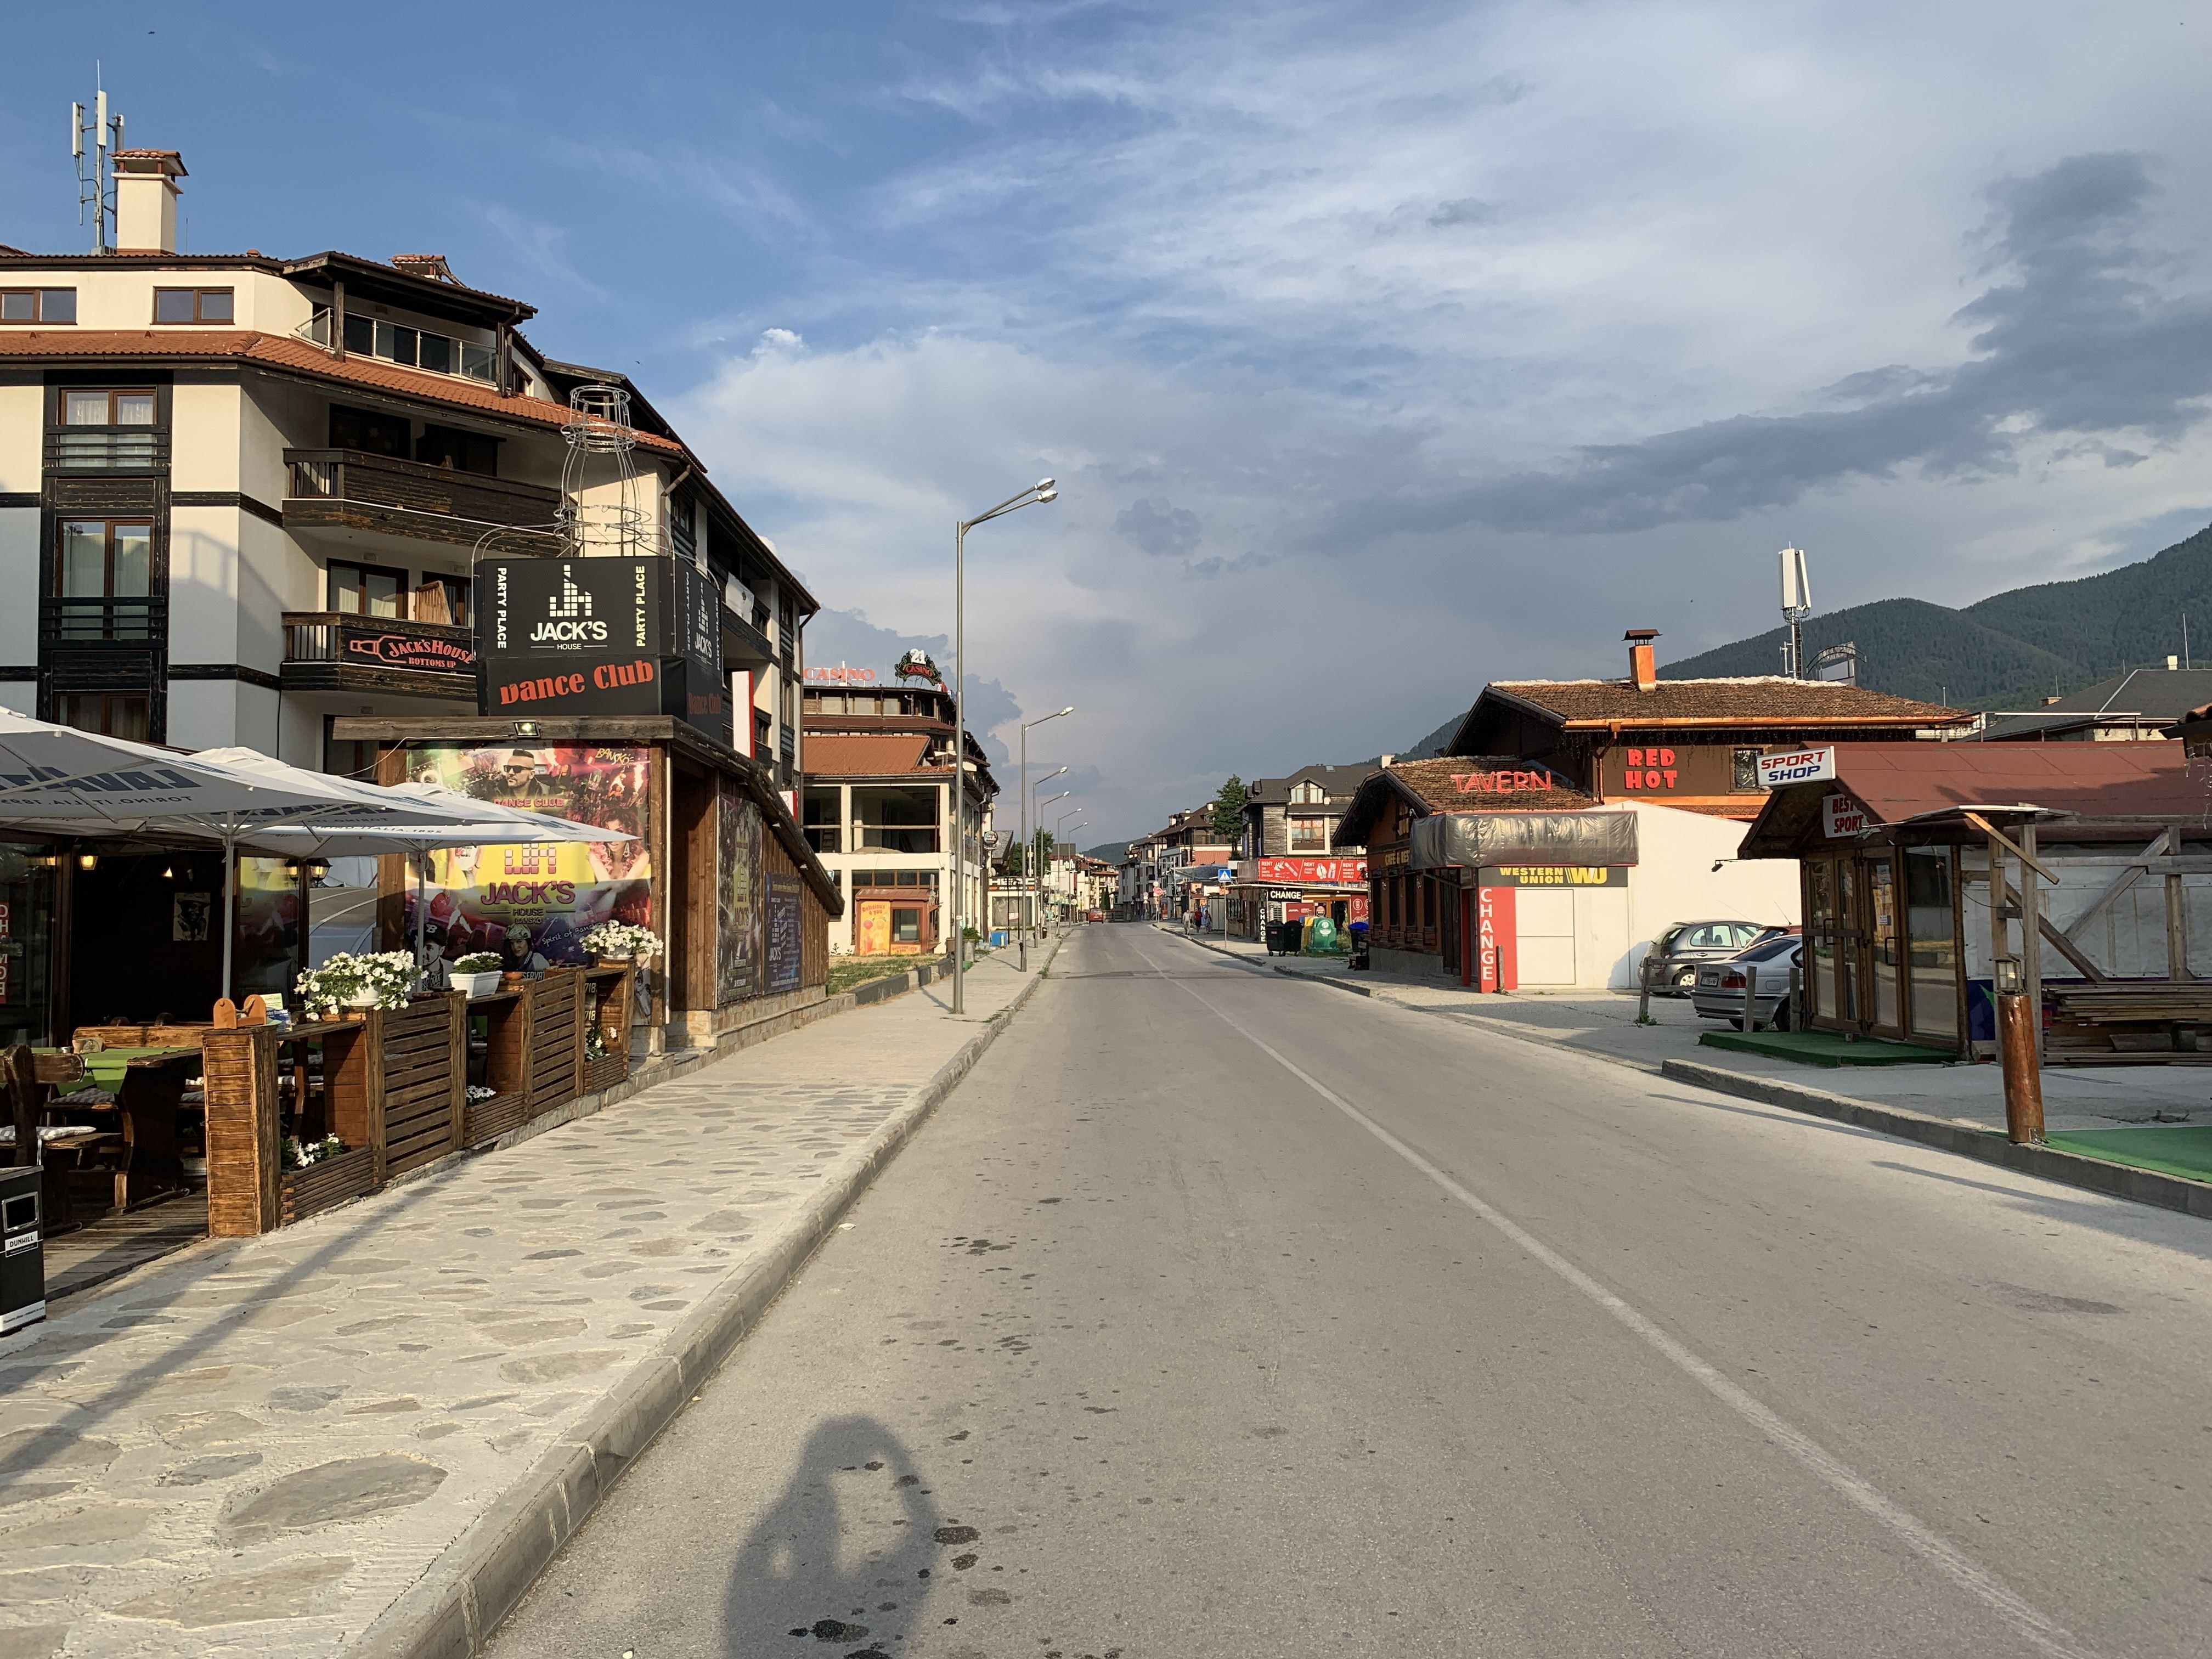 Summer in Bansko Bulgaria